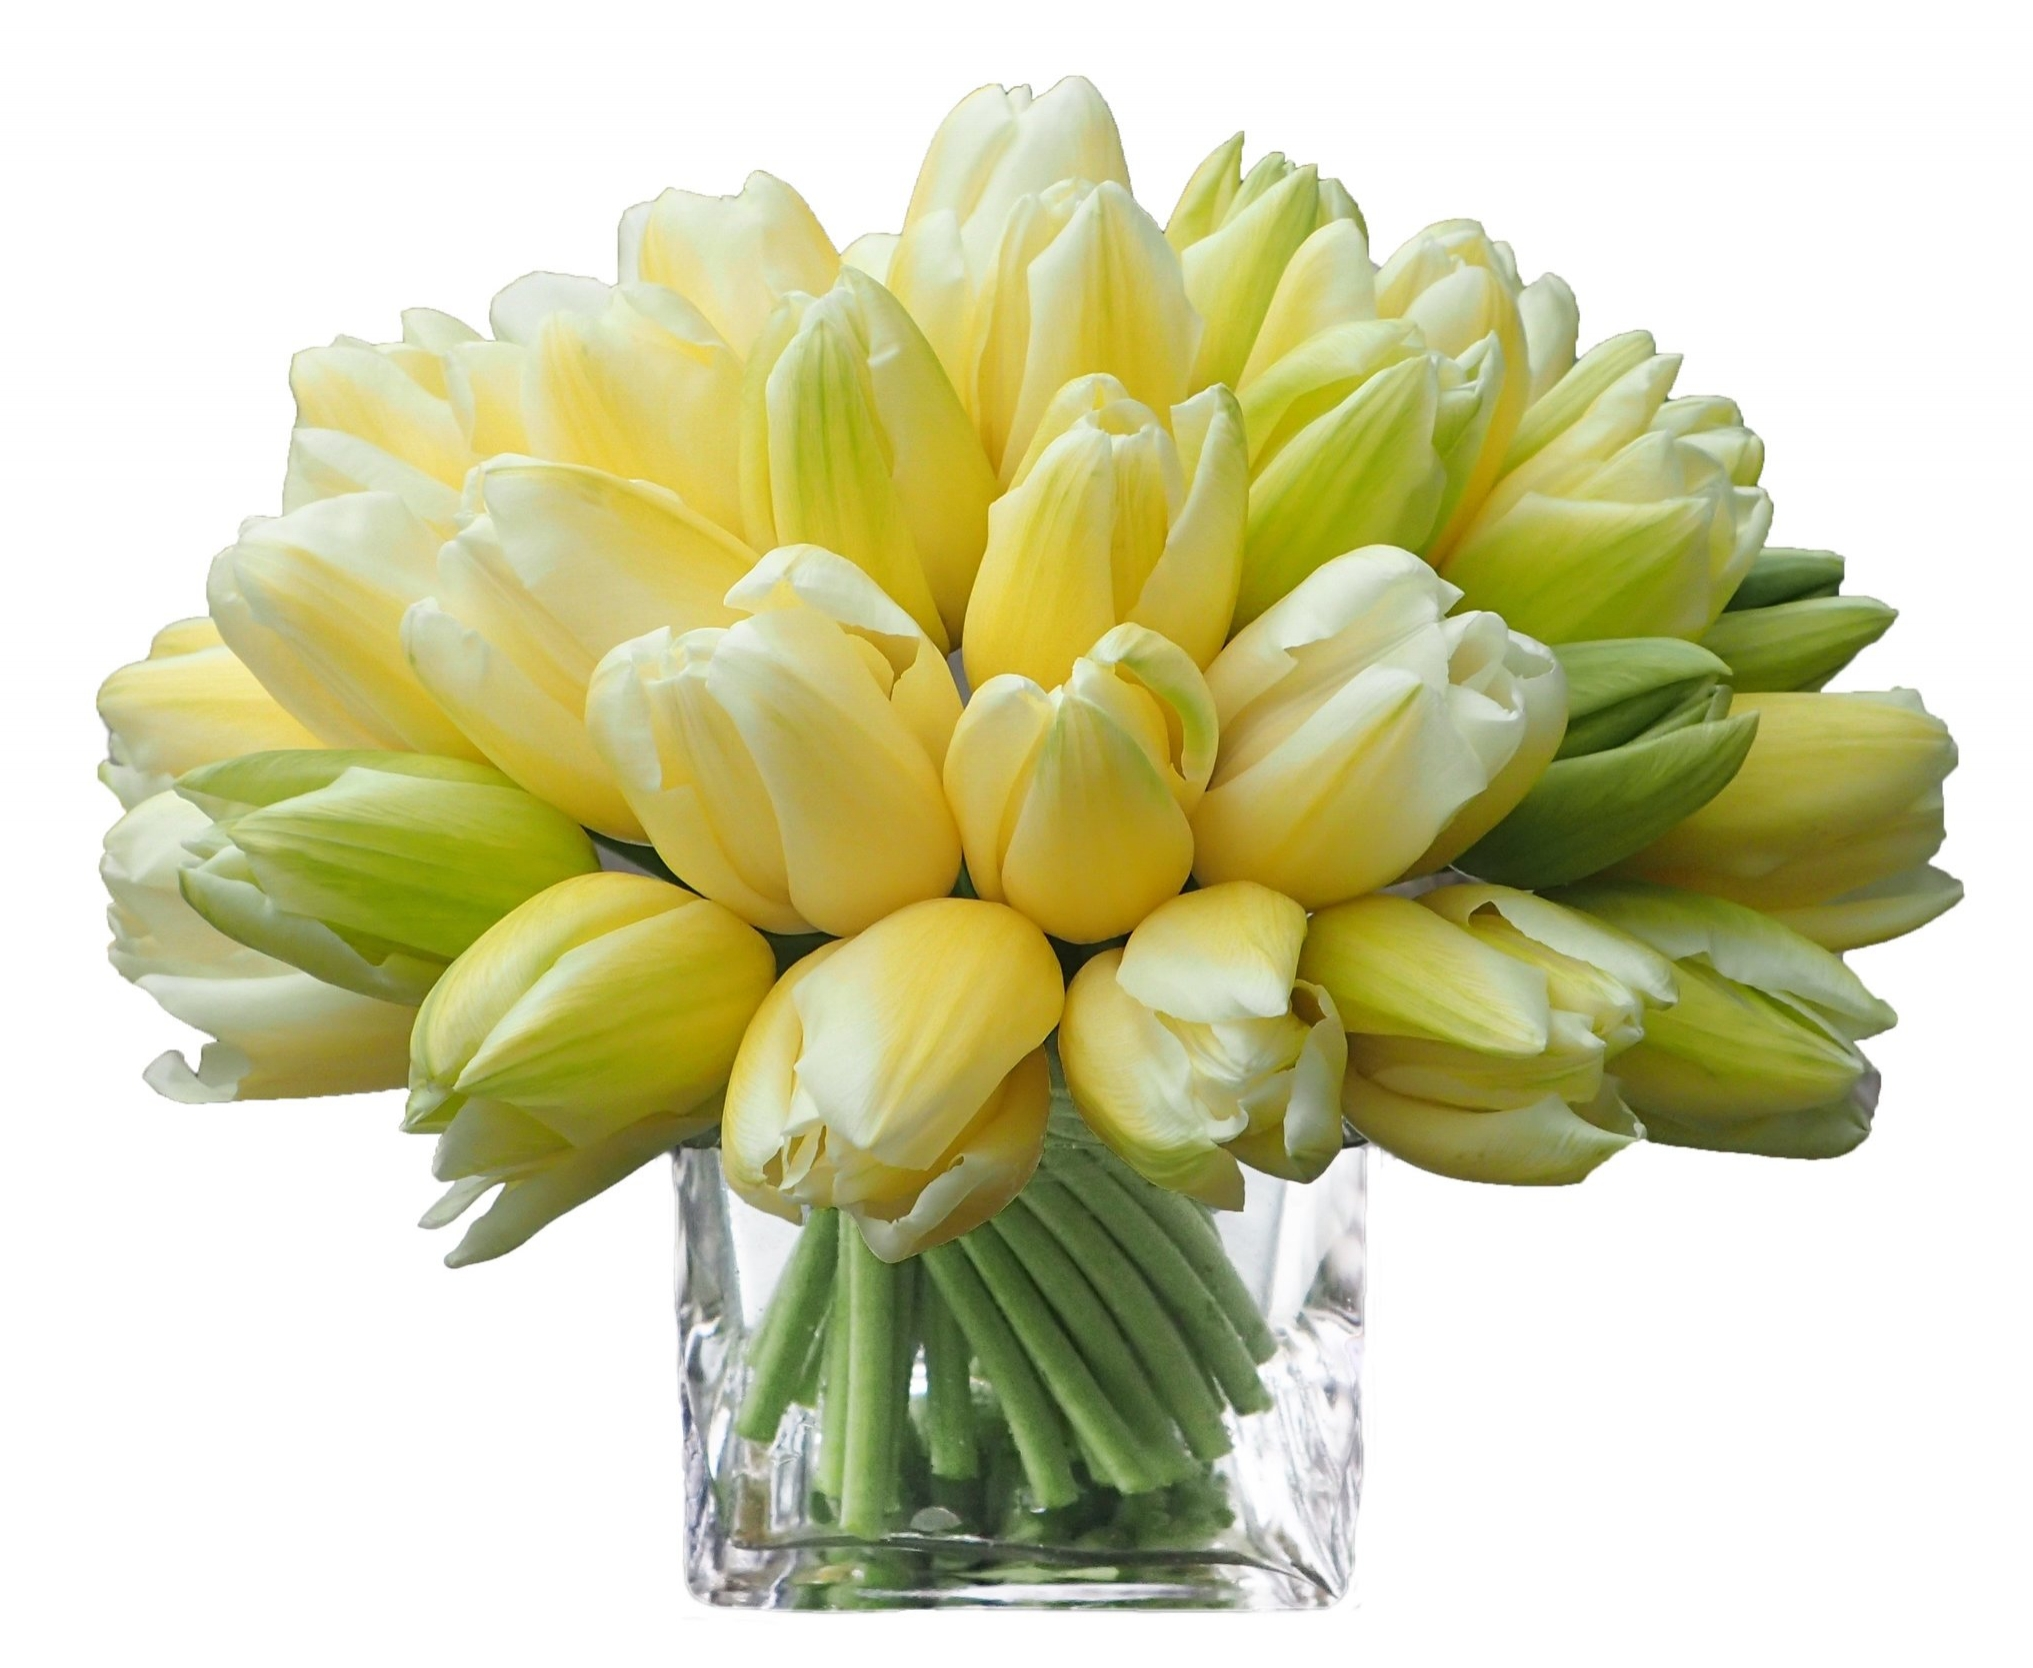 CoupeTulips copy.jpg